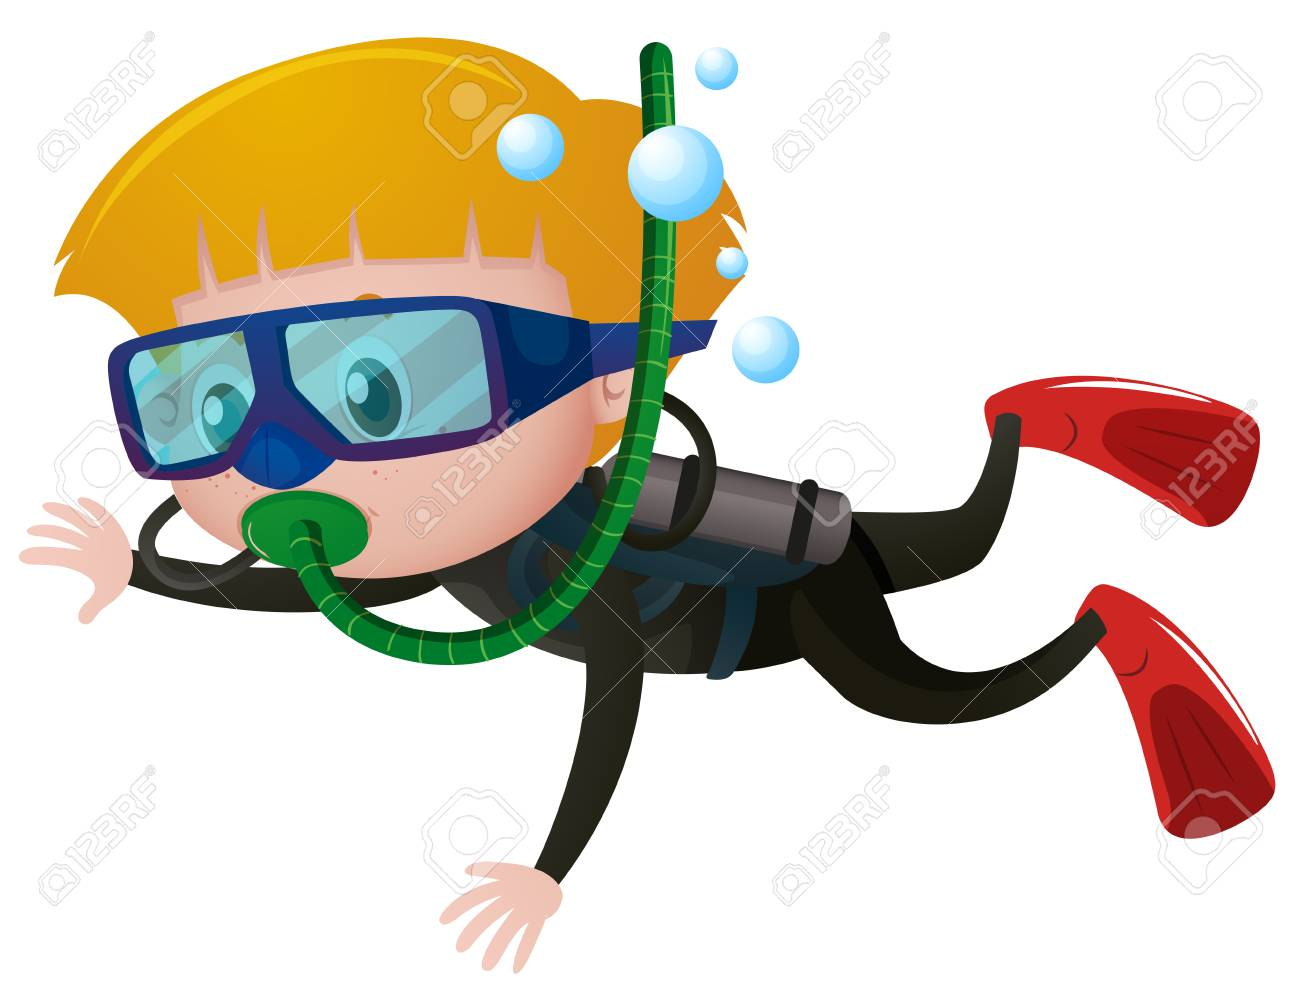 363516990dbbb Boy Scuba Diving Underwater Illustration Royalty Free Cliparts ...